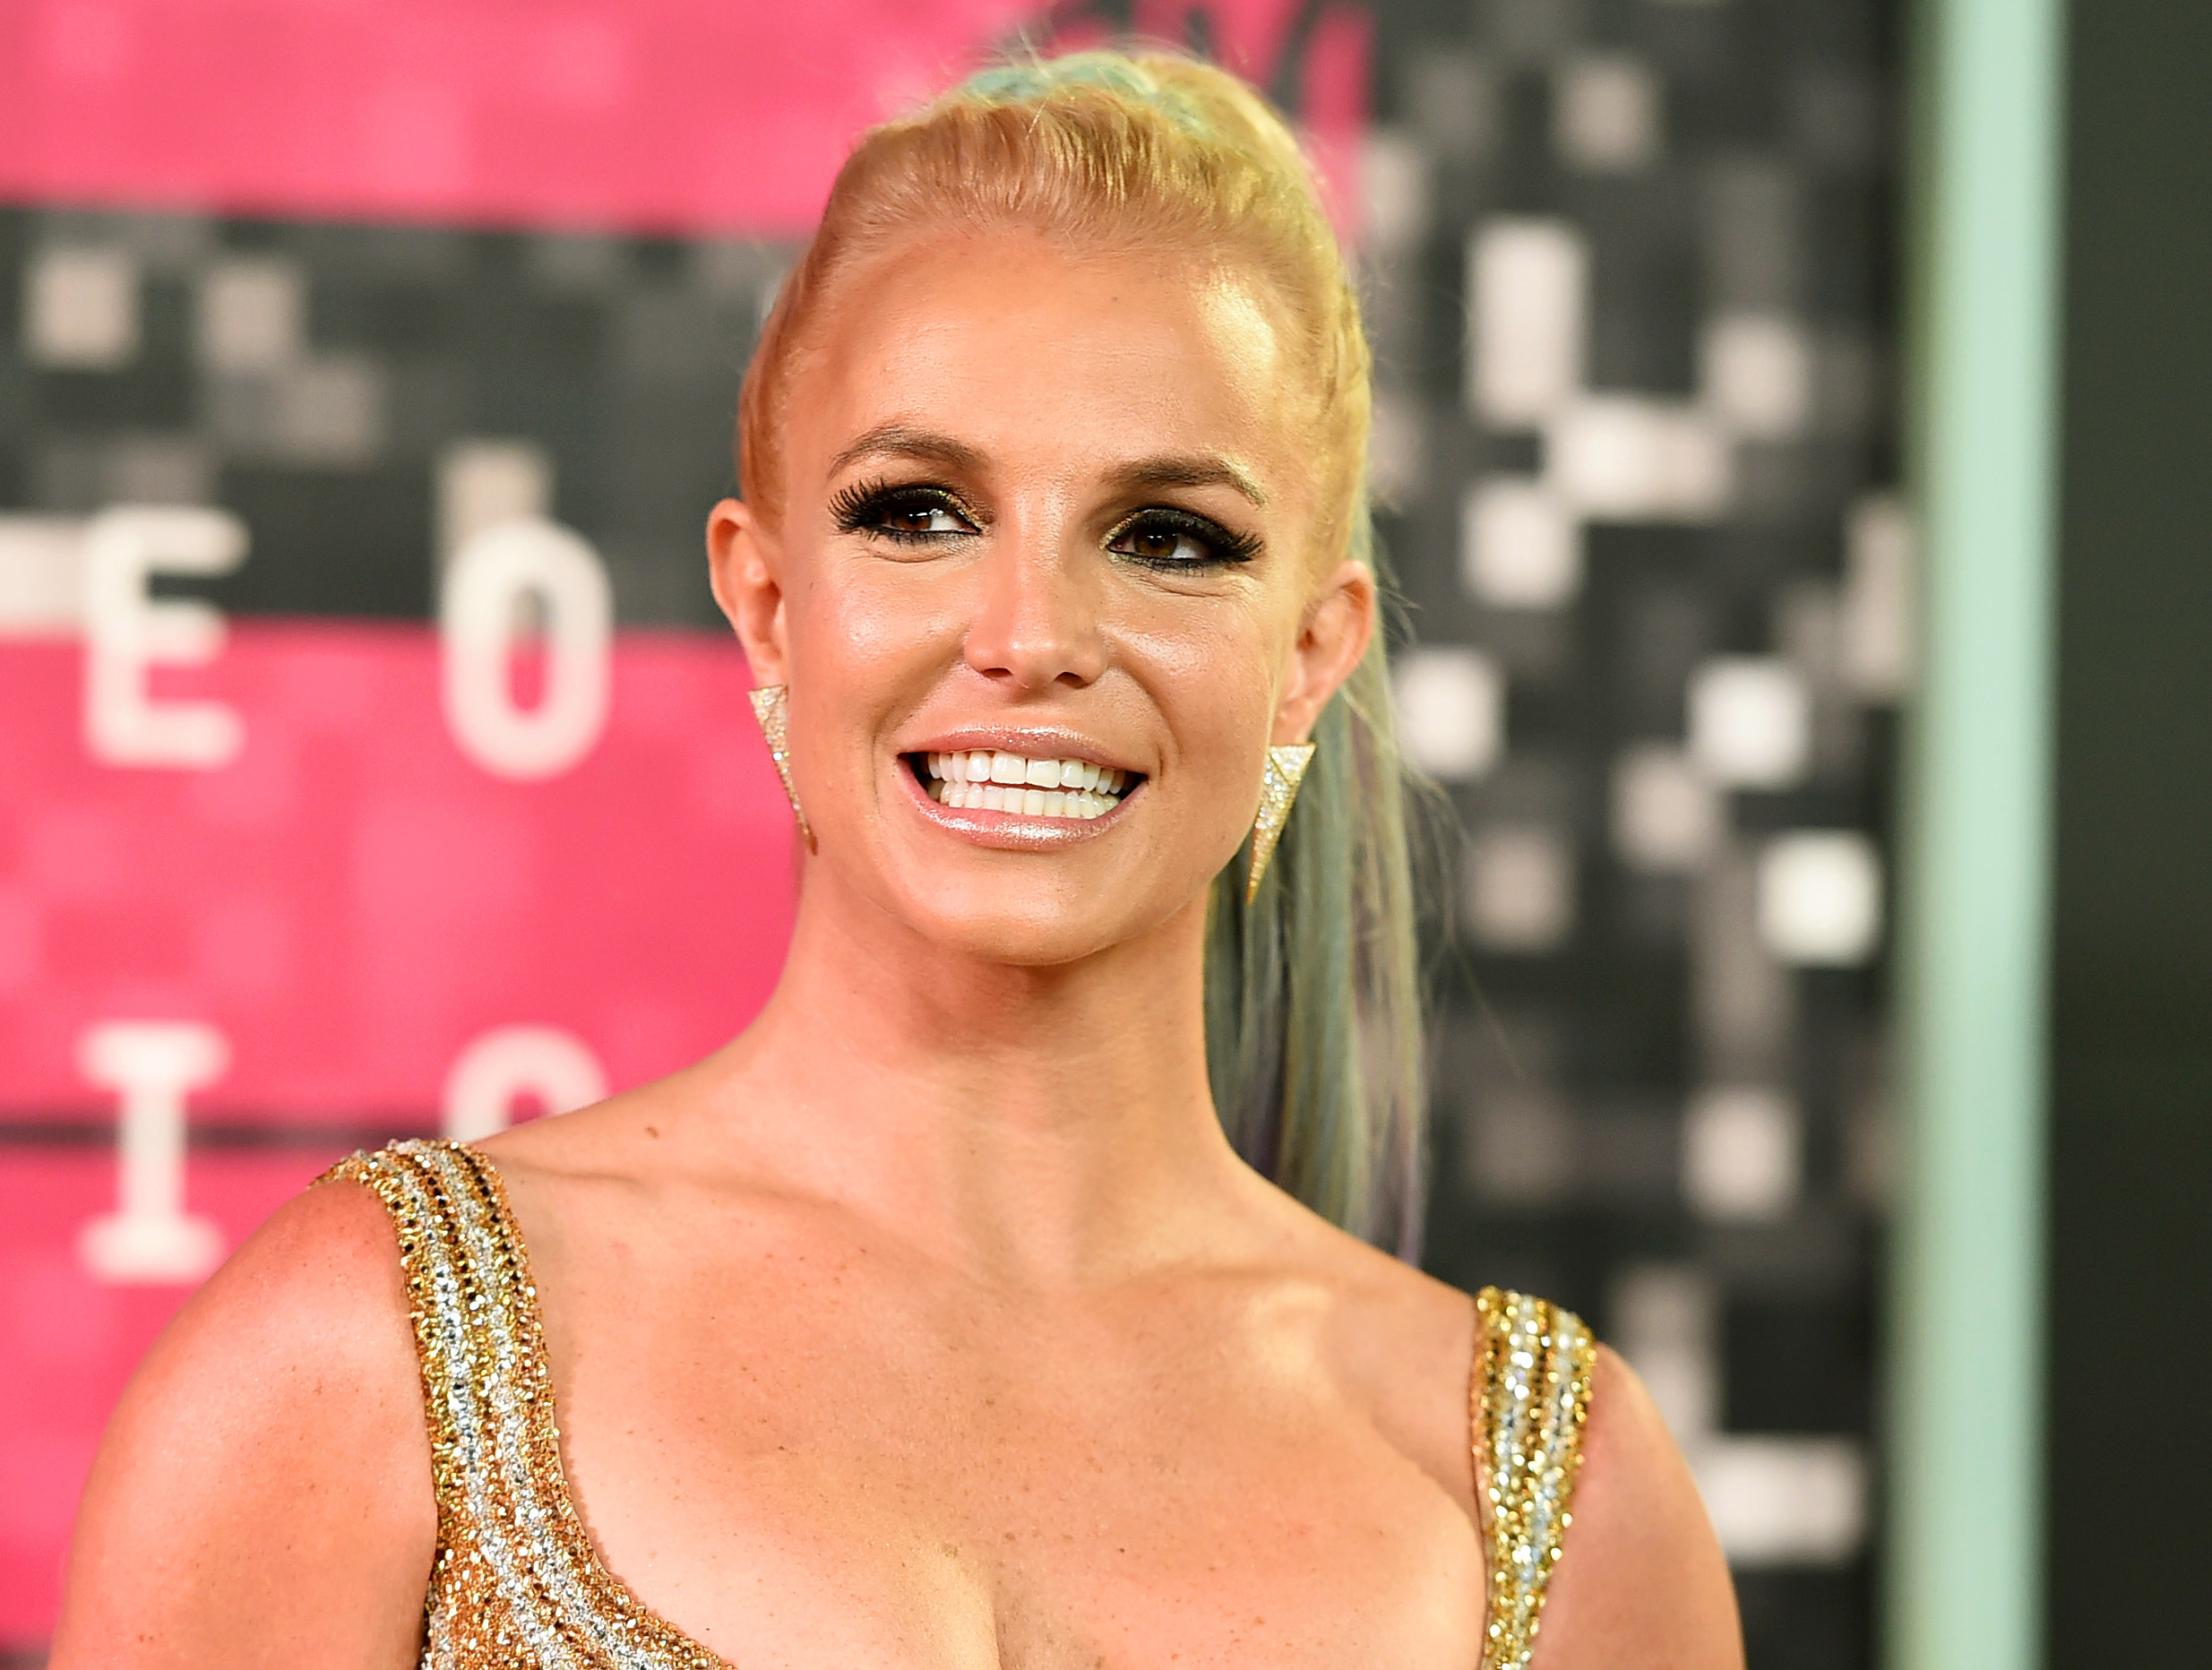 FILE - In this Aug. 30, 2015, file photo, Britney Spears arrives at the MTV Video Music Awards in Los Angeles. Spears, Elton John, Alicia Keys and Calvin Harris are among the performers at this year's Apple Music Festival, Apple announced the lineup Wednesday, Aug. 24, 2016. (Photo by Jordan Strauss/Invision/AP, File)